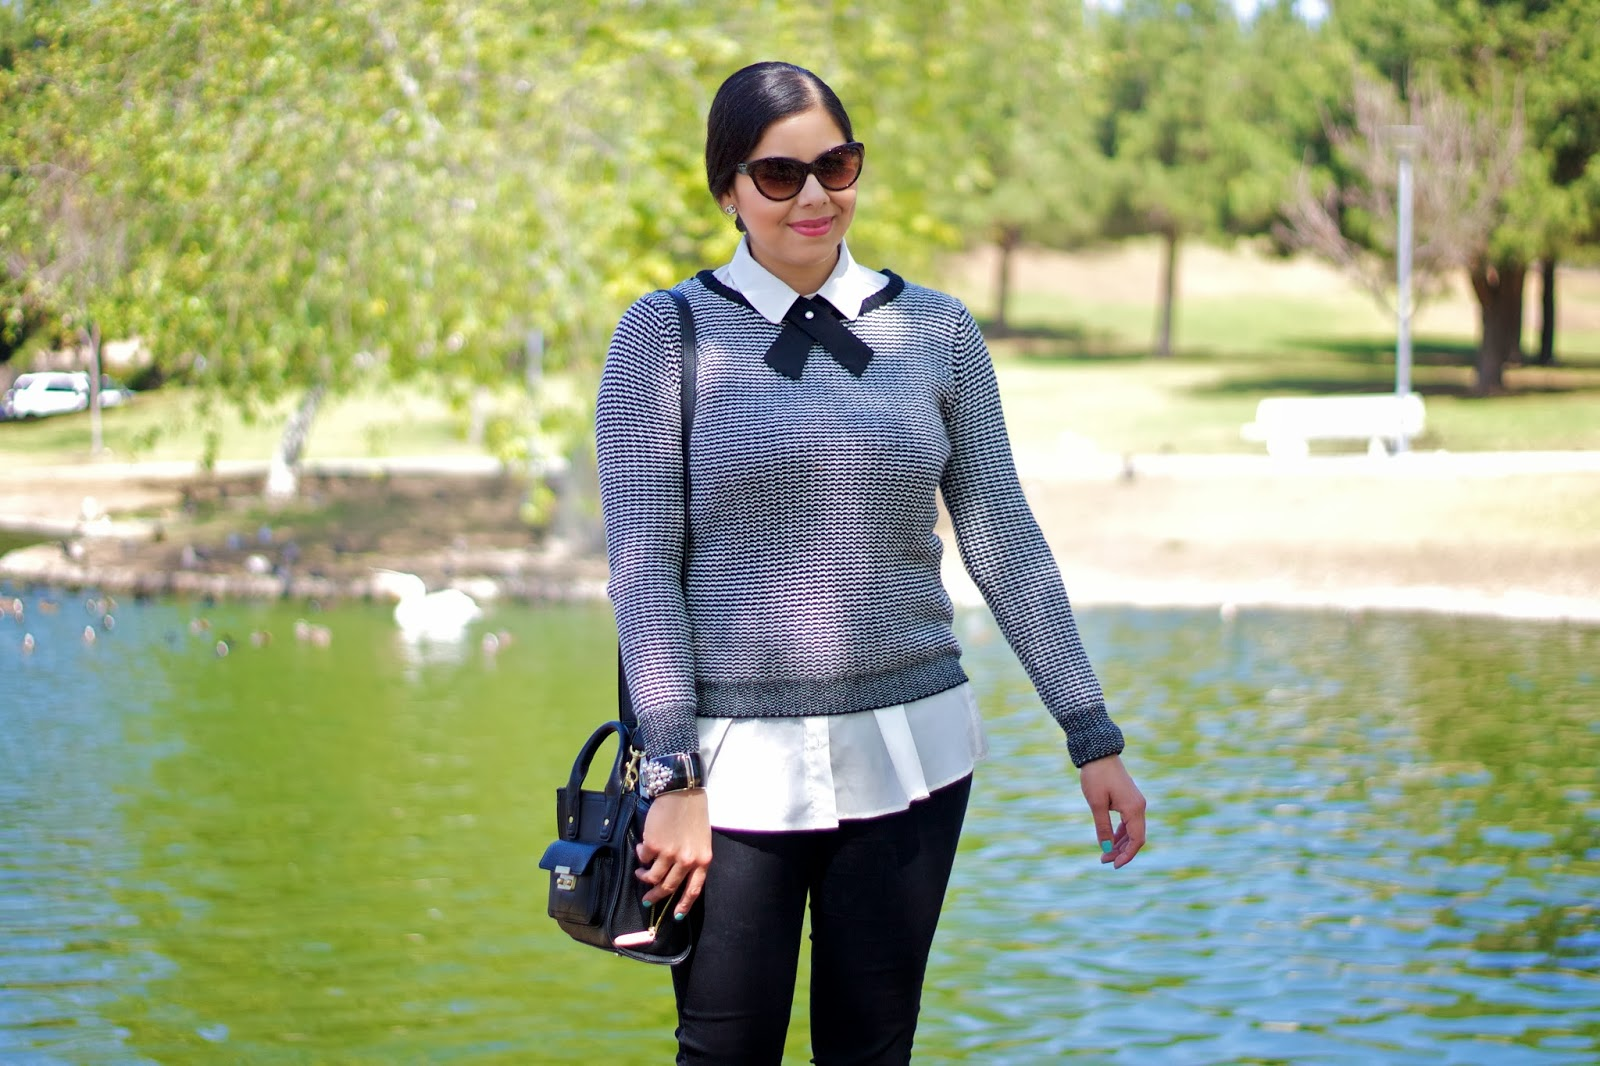 Collared shirt under sweater with bow tie